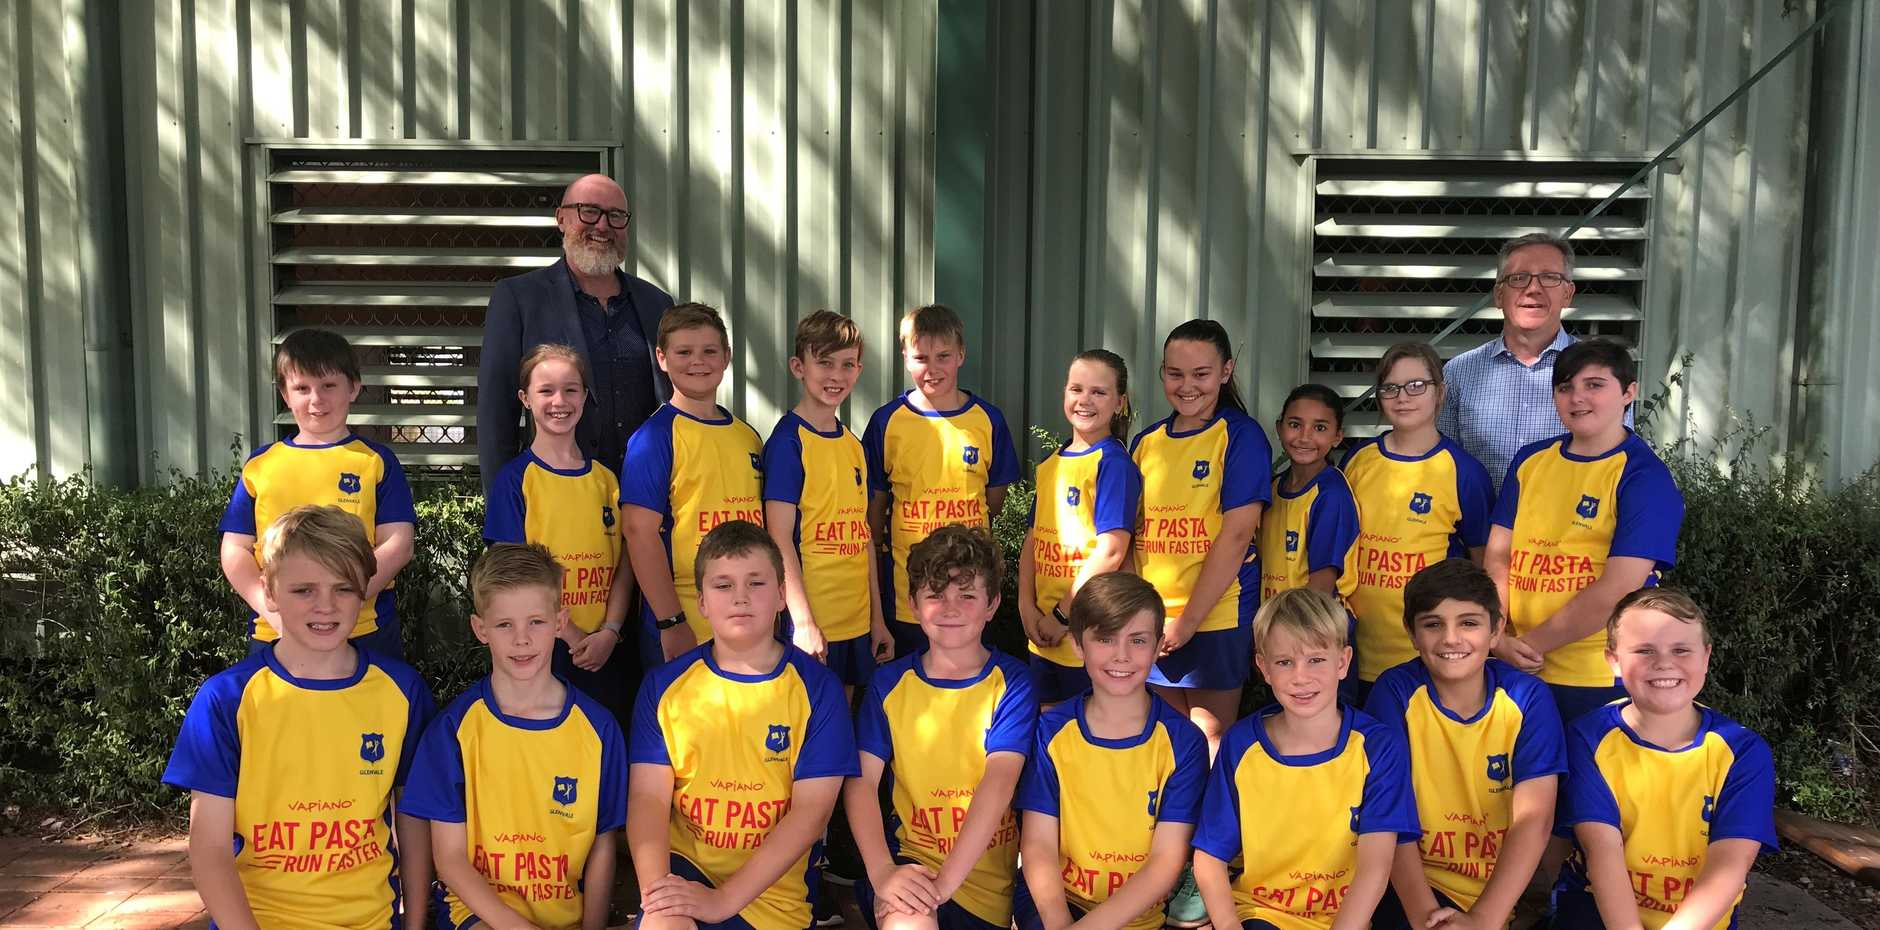 Vapiano owner and managing director Will Cooke with Glenvale State School Principal Dave Saxton and students from the Glenvale State School rugby league team.  Back row:   Seth, Amelia, Xavier, Jayden, Liam, Kate, Lilly, Sienna, Imogen and Issabelle.  Front row:  Bodie, Ryan, Aiden, Jack, Jasper, Klay, Ethan and Logan.